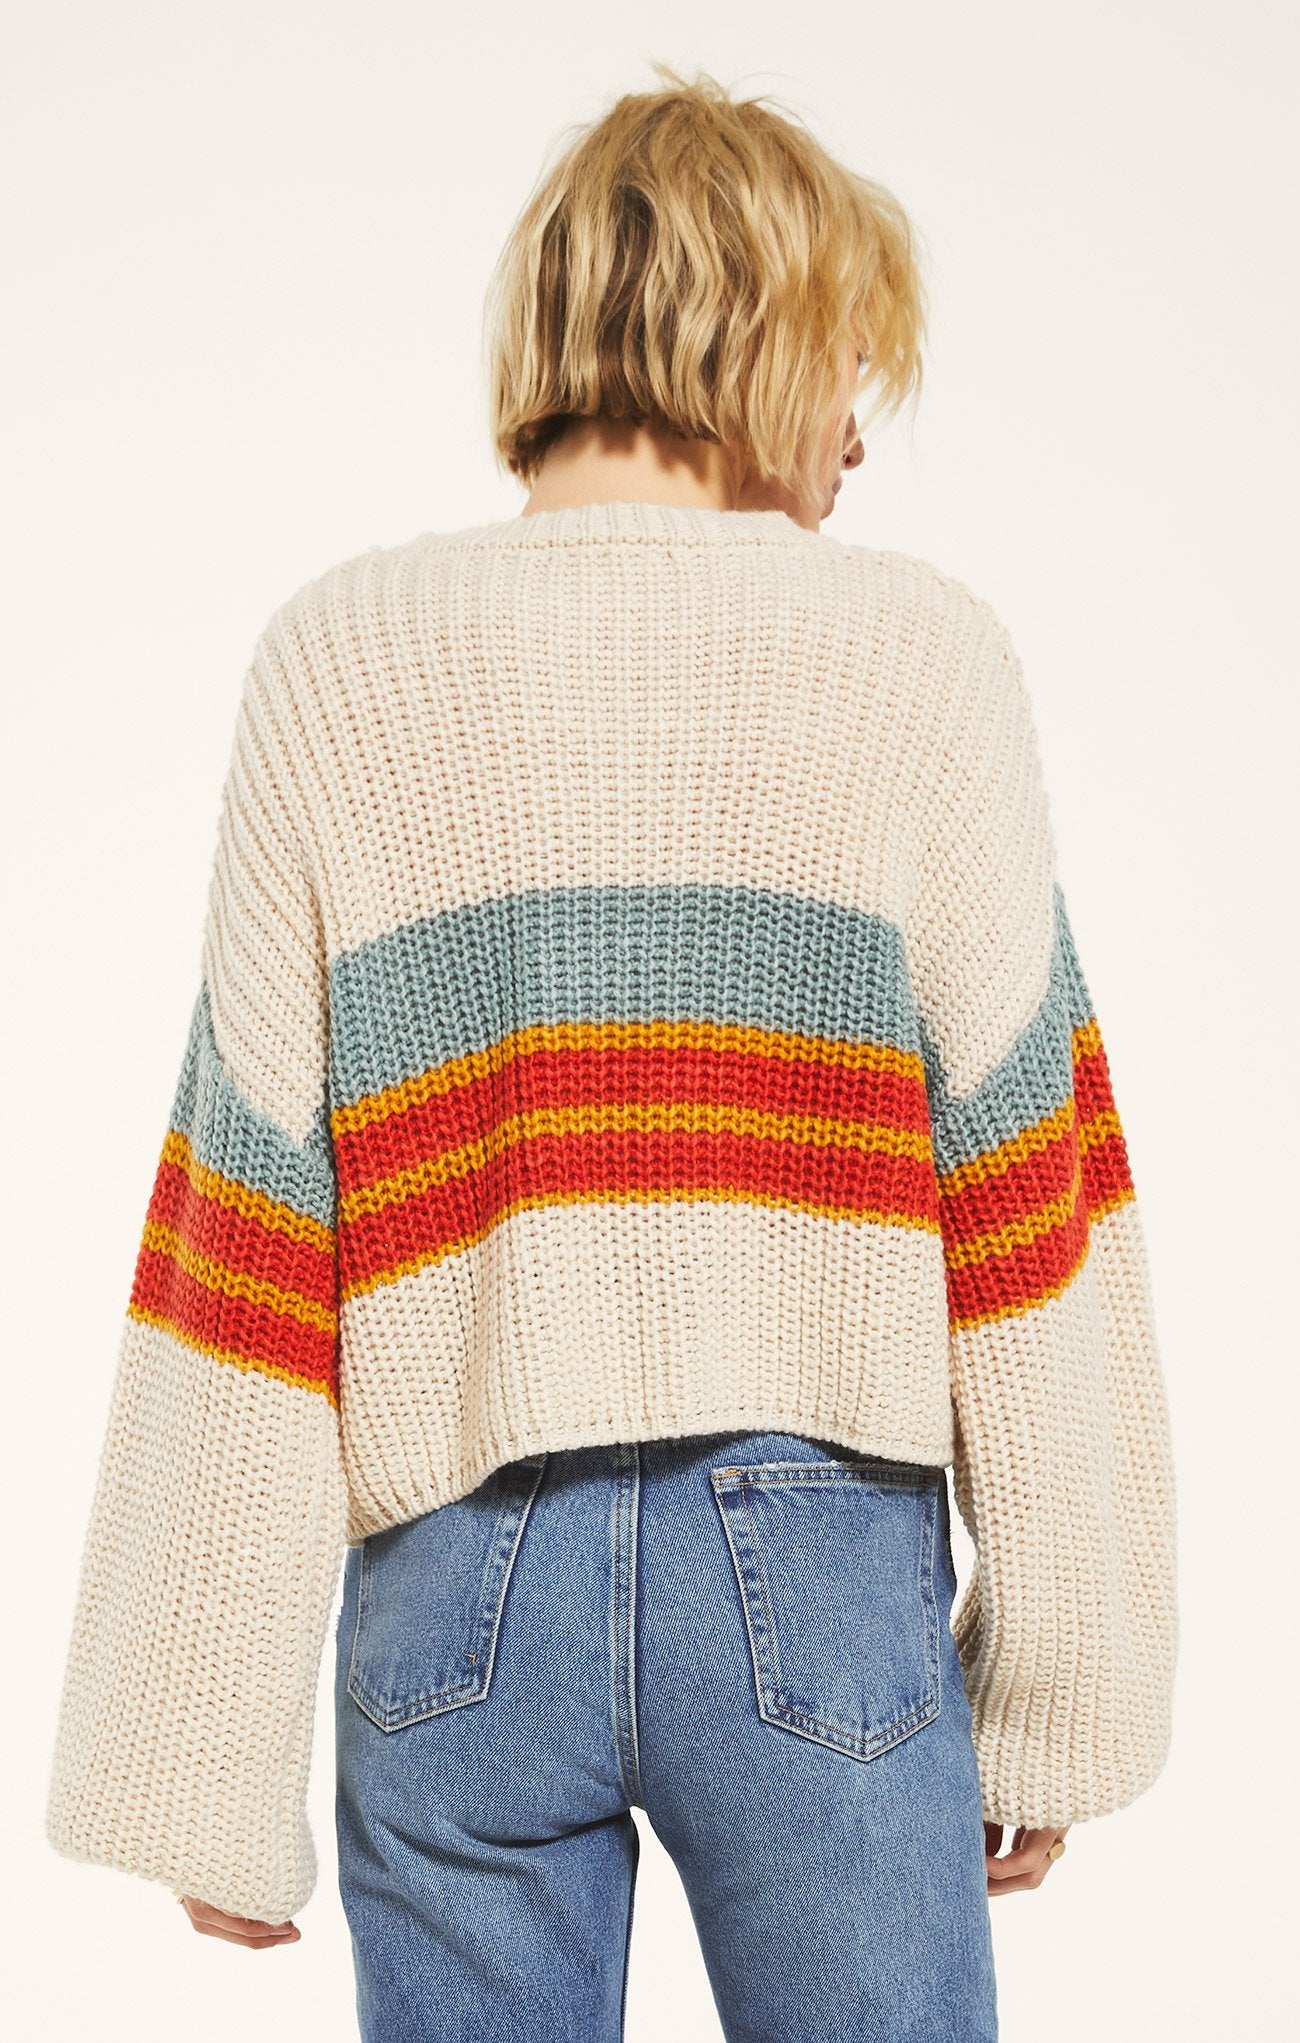 Yona Sweater